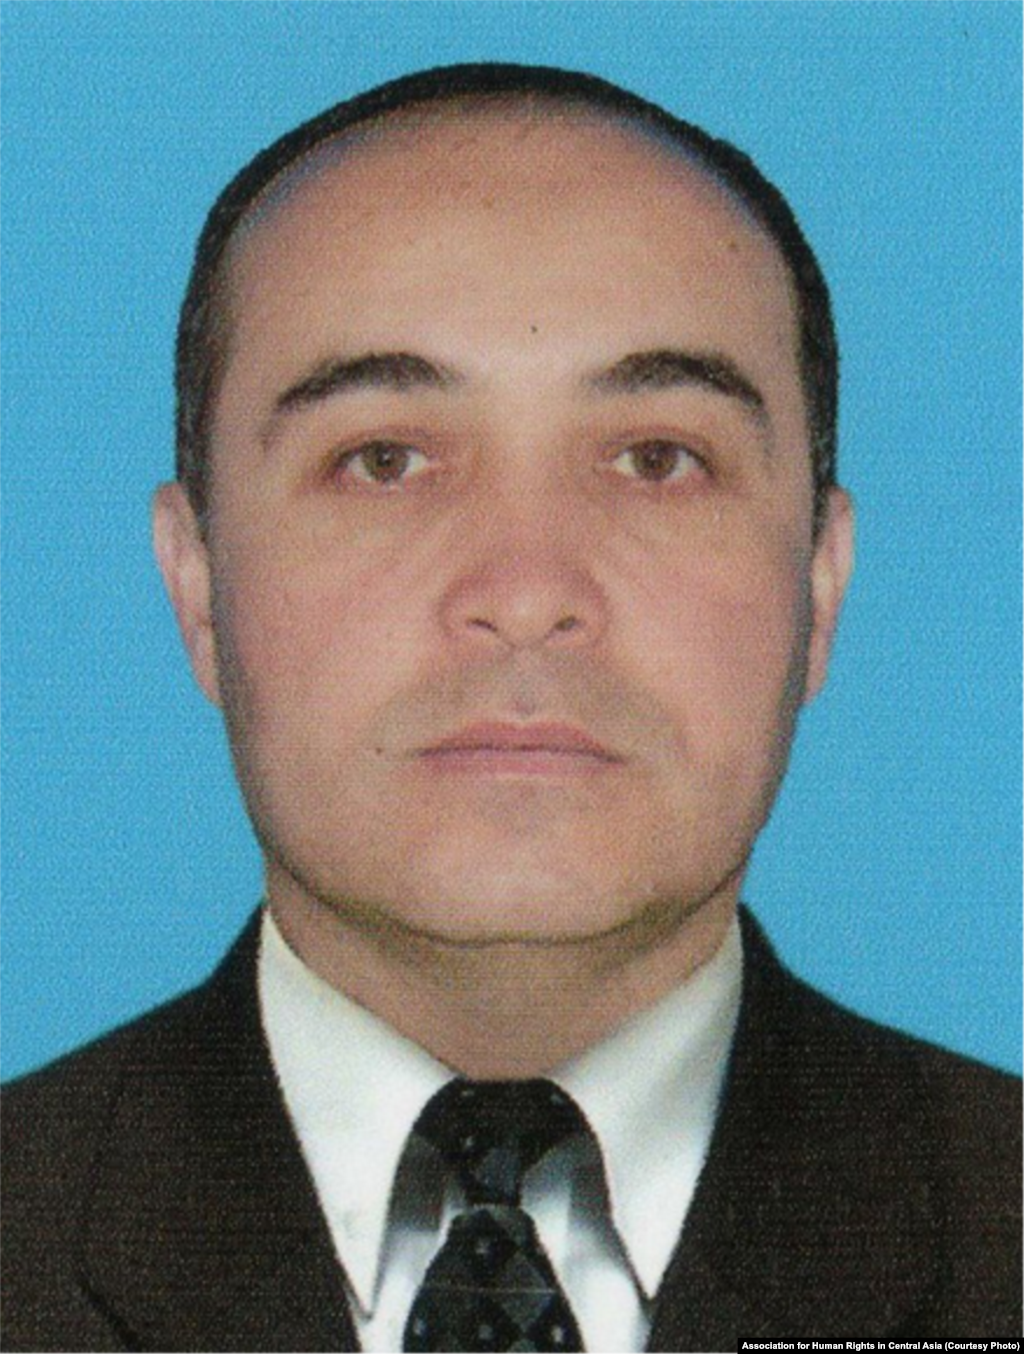 Since 2005, Fahriddin Tillaev has advocated for workers' rights in southeastern Uzbekistan. He was arrested in 2014. Authorities stuck needles between his fingers and toes to force him into a false confession for human trafficking. He is serving an eight-year sentence in Navoi prison.